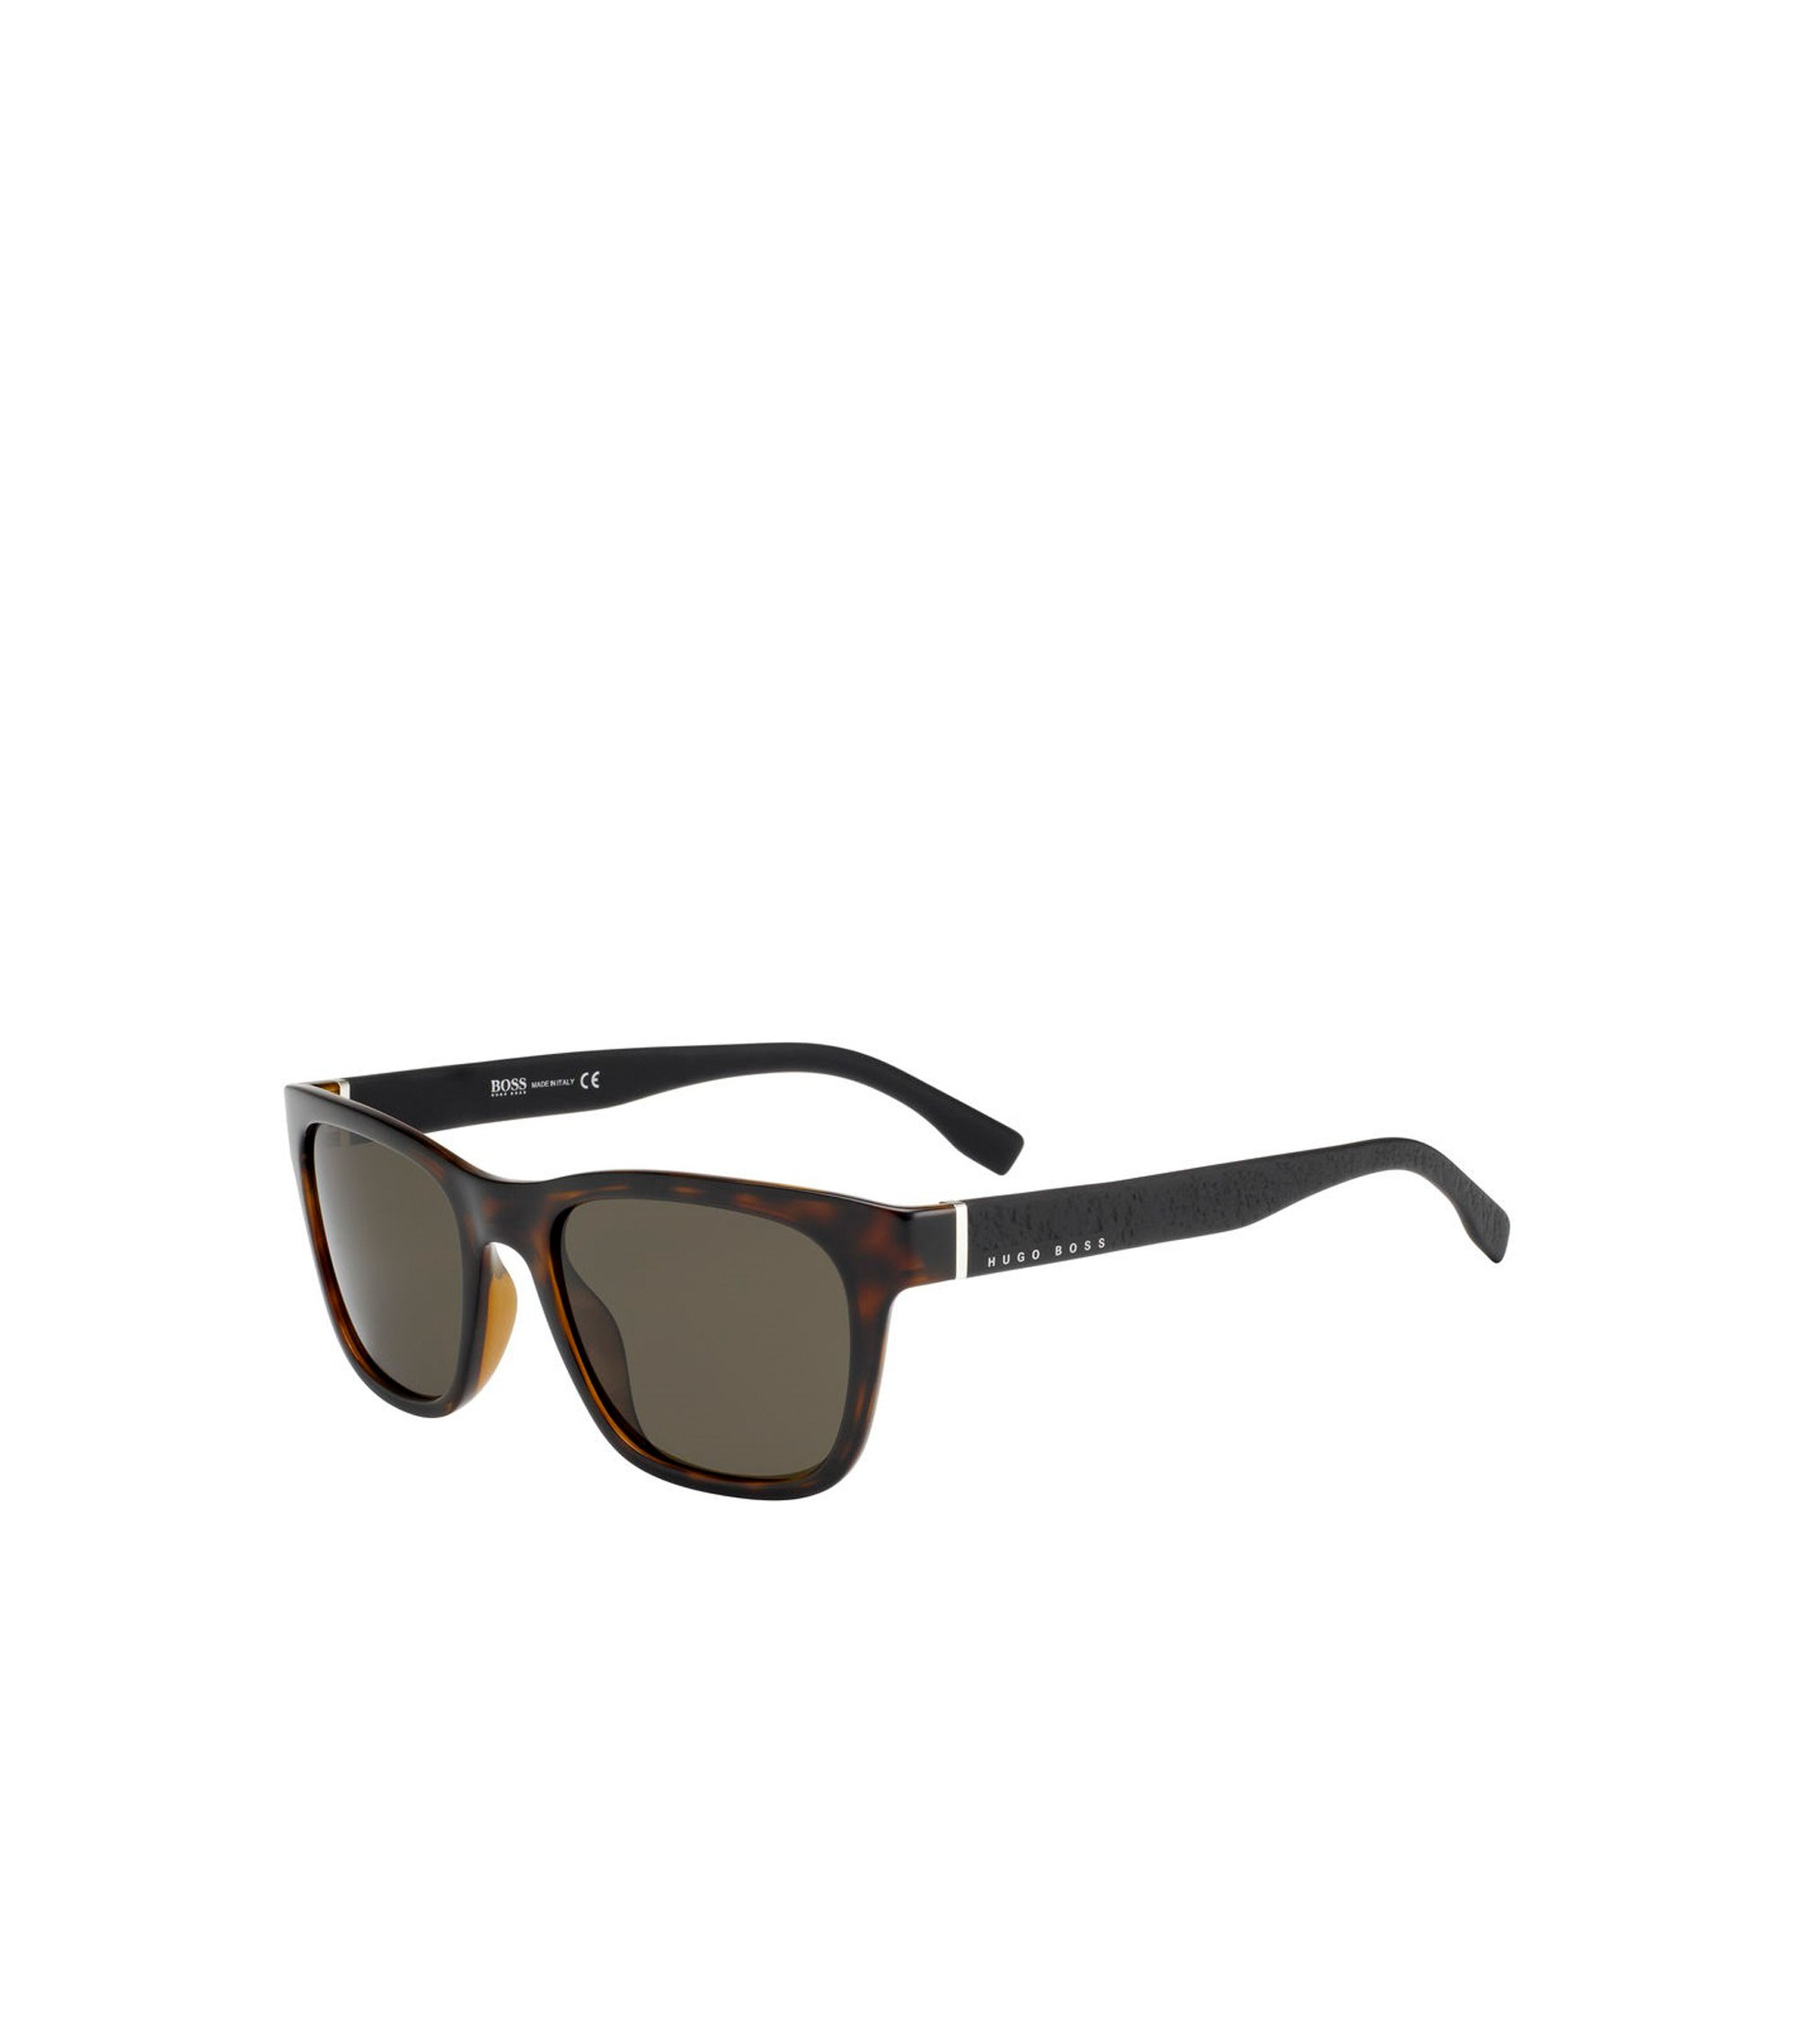 Black Lens Havana Square Sunglasses | BOSS 0830, Assorted-Pre-Pack